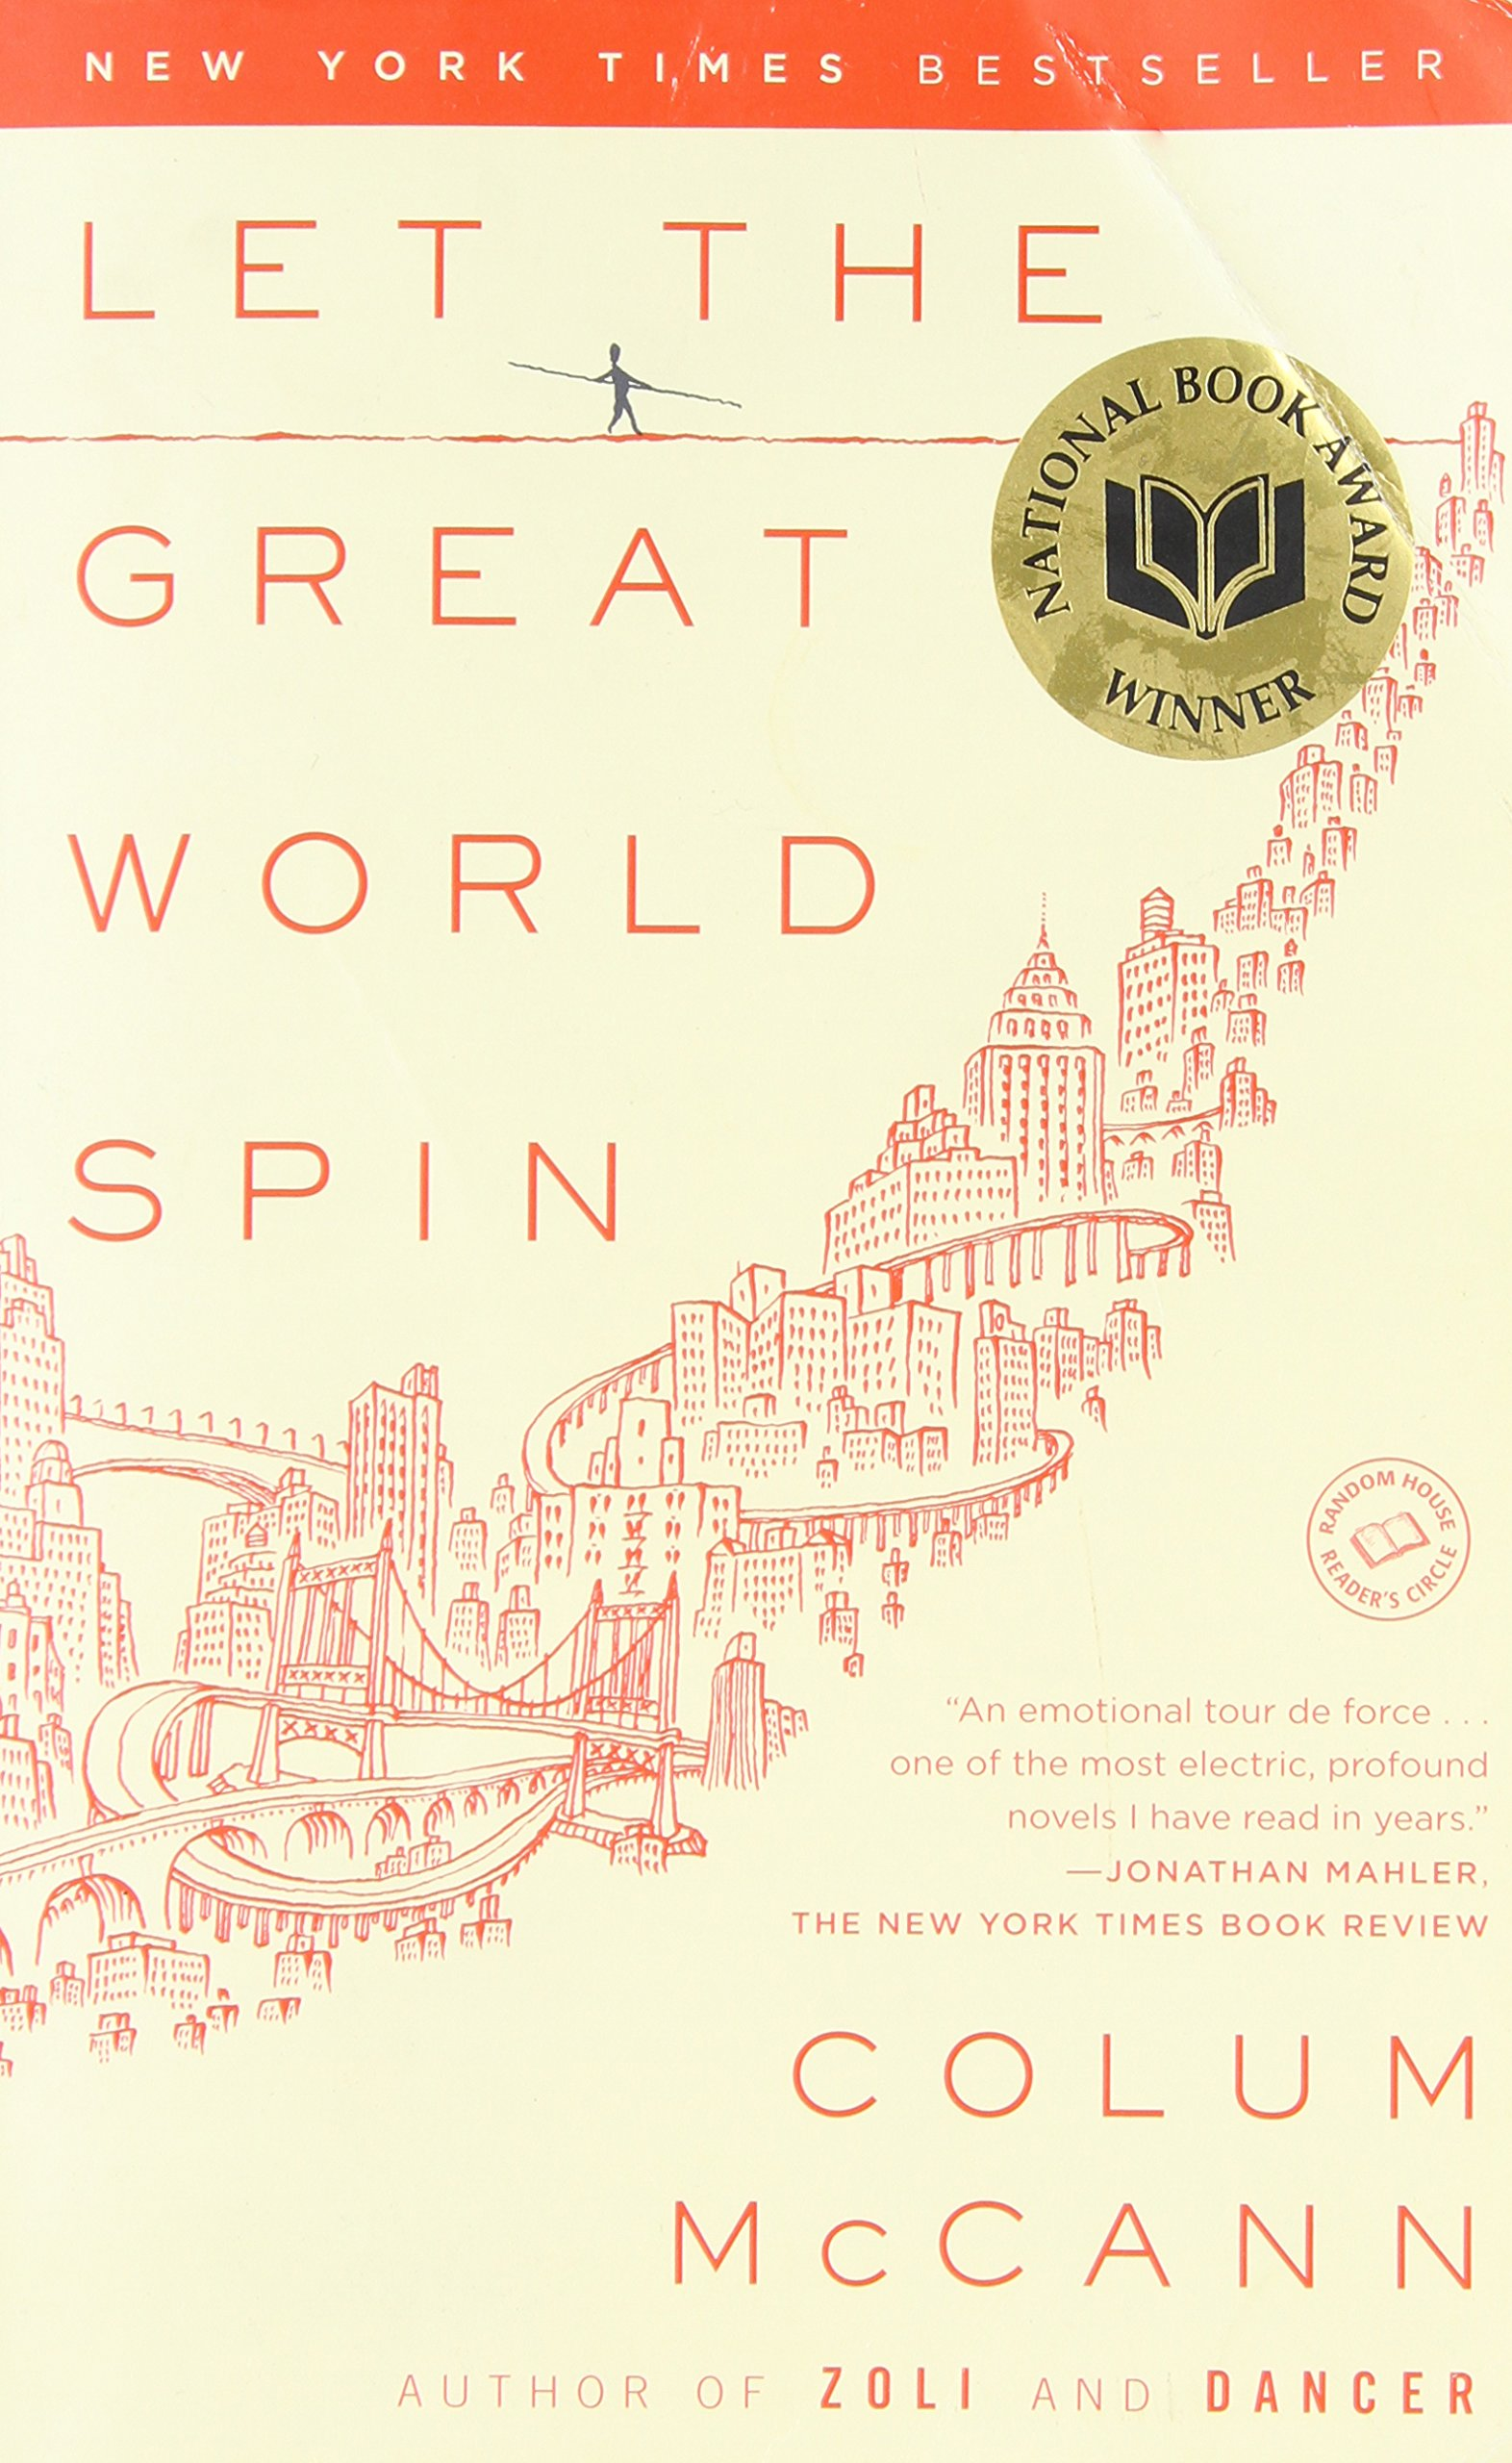 Let the Great World Spin ISBN-13 9780812973990